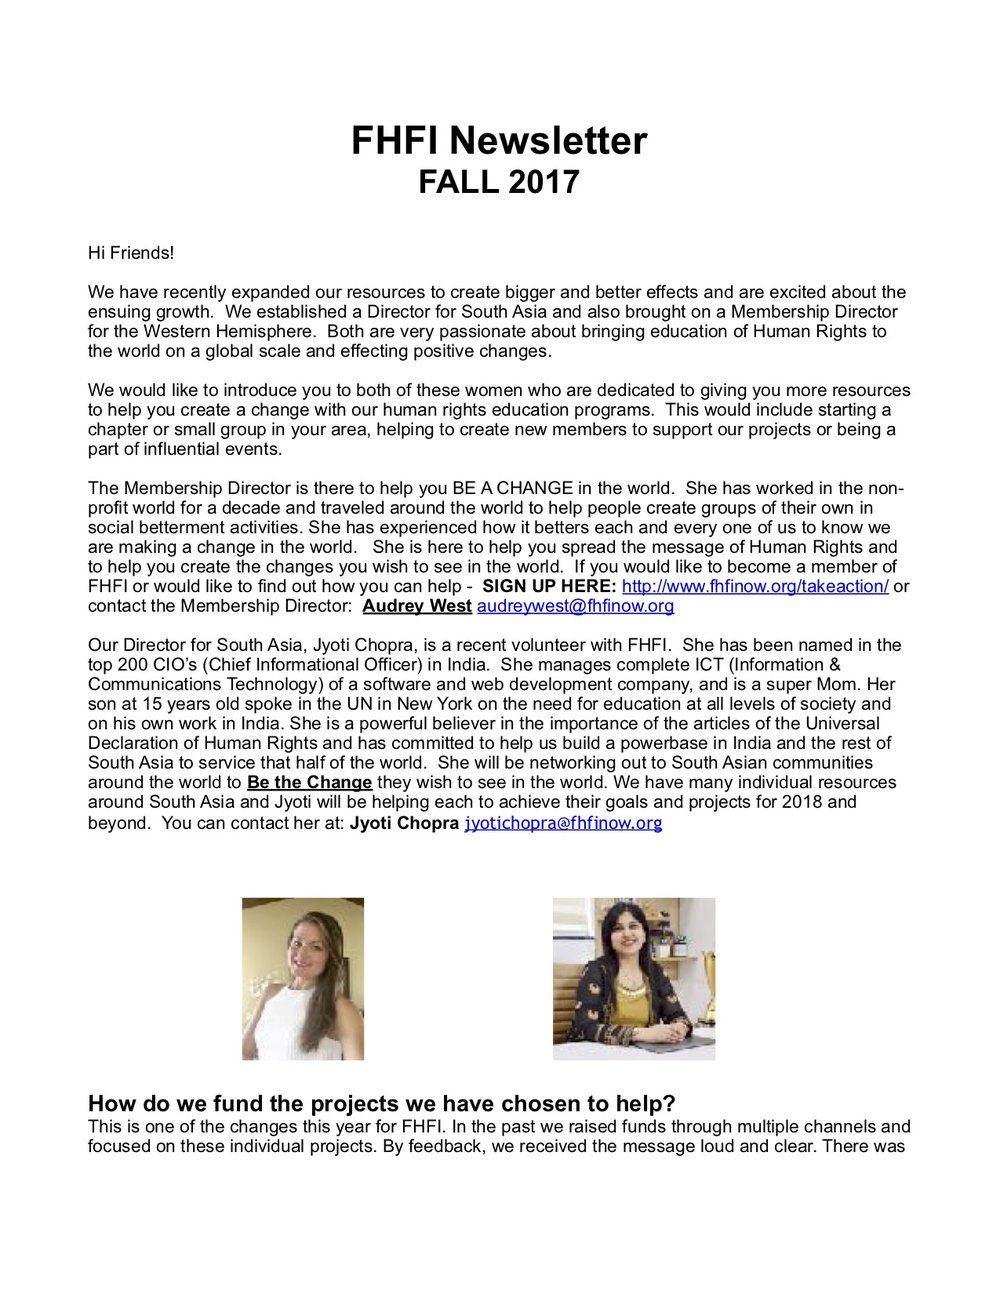 Newletter fall 2017 Final.jpg